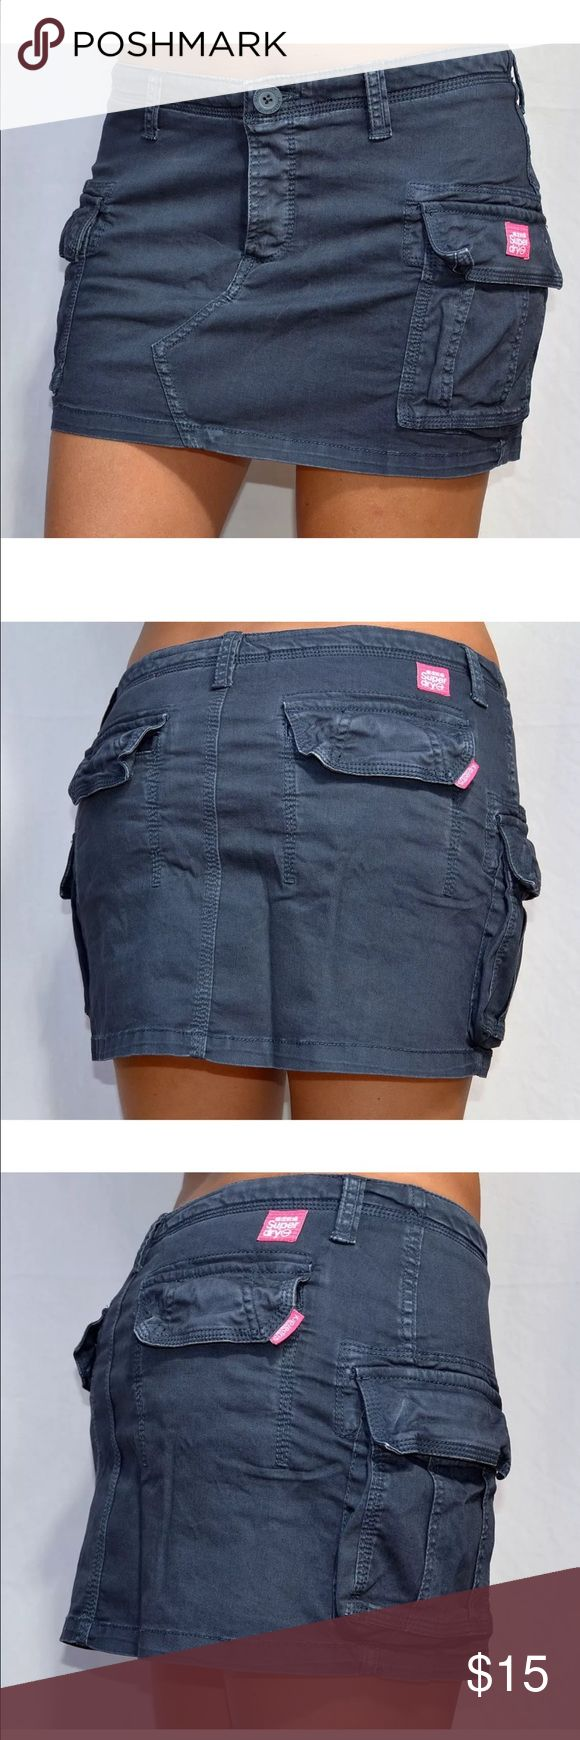 Superdry Blue Mini Skirt size S / color: blue / never worn / so cute, retro vintage core cargo mini skirt with multi pocket design. Superdry Skirts Mini